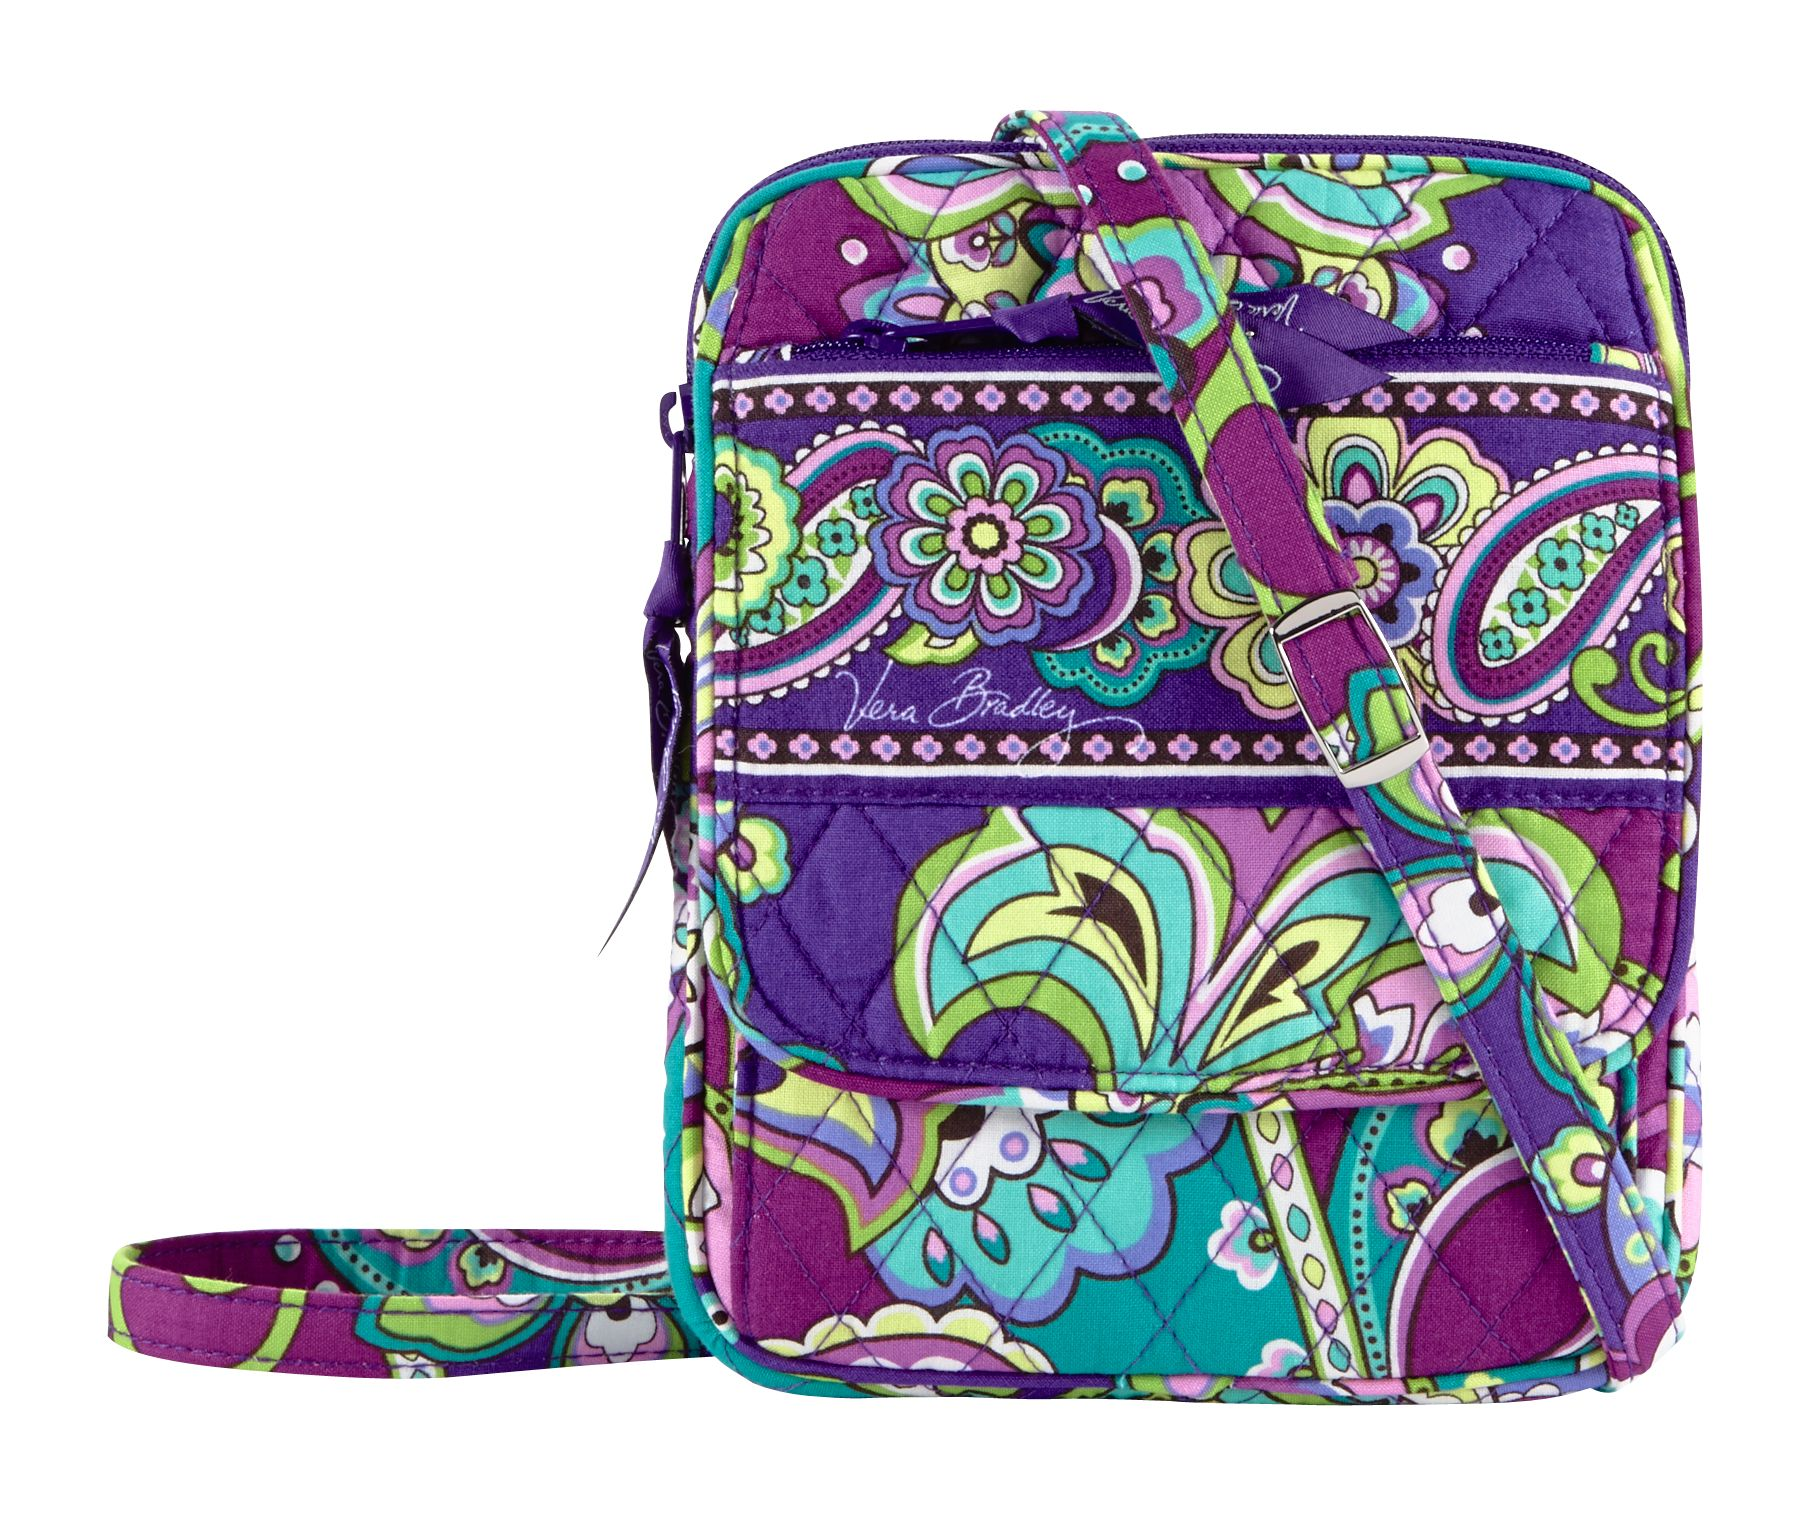 Vera Bradley Mini Hipster Crossbody in Heather